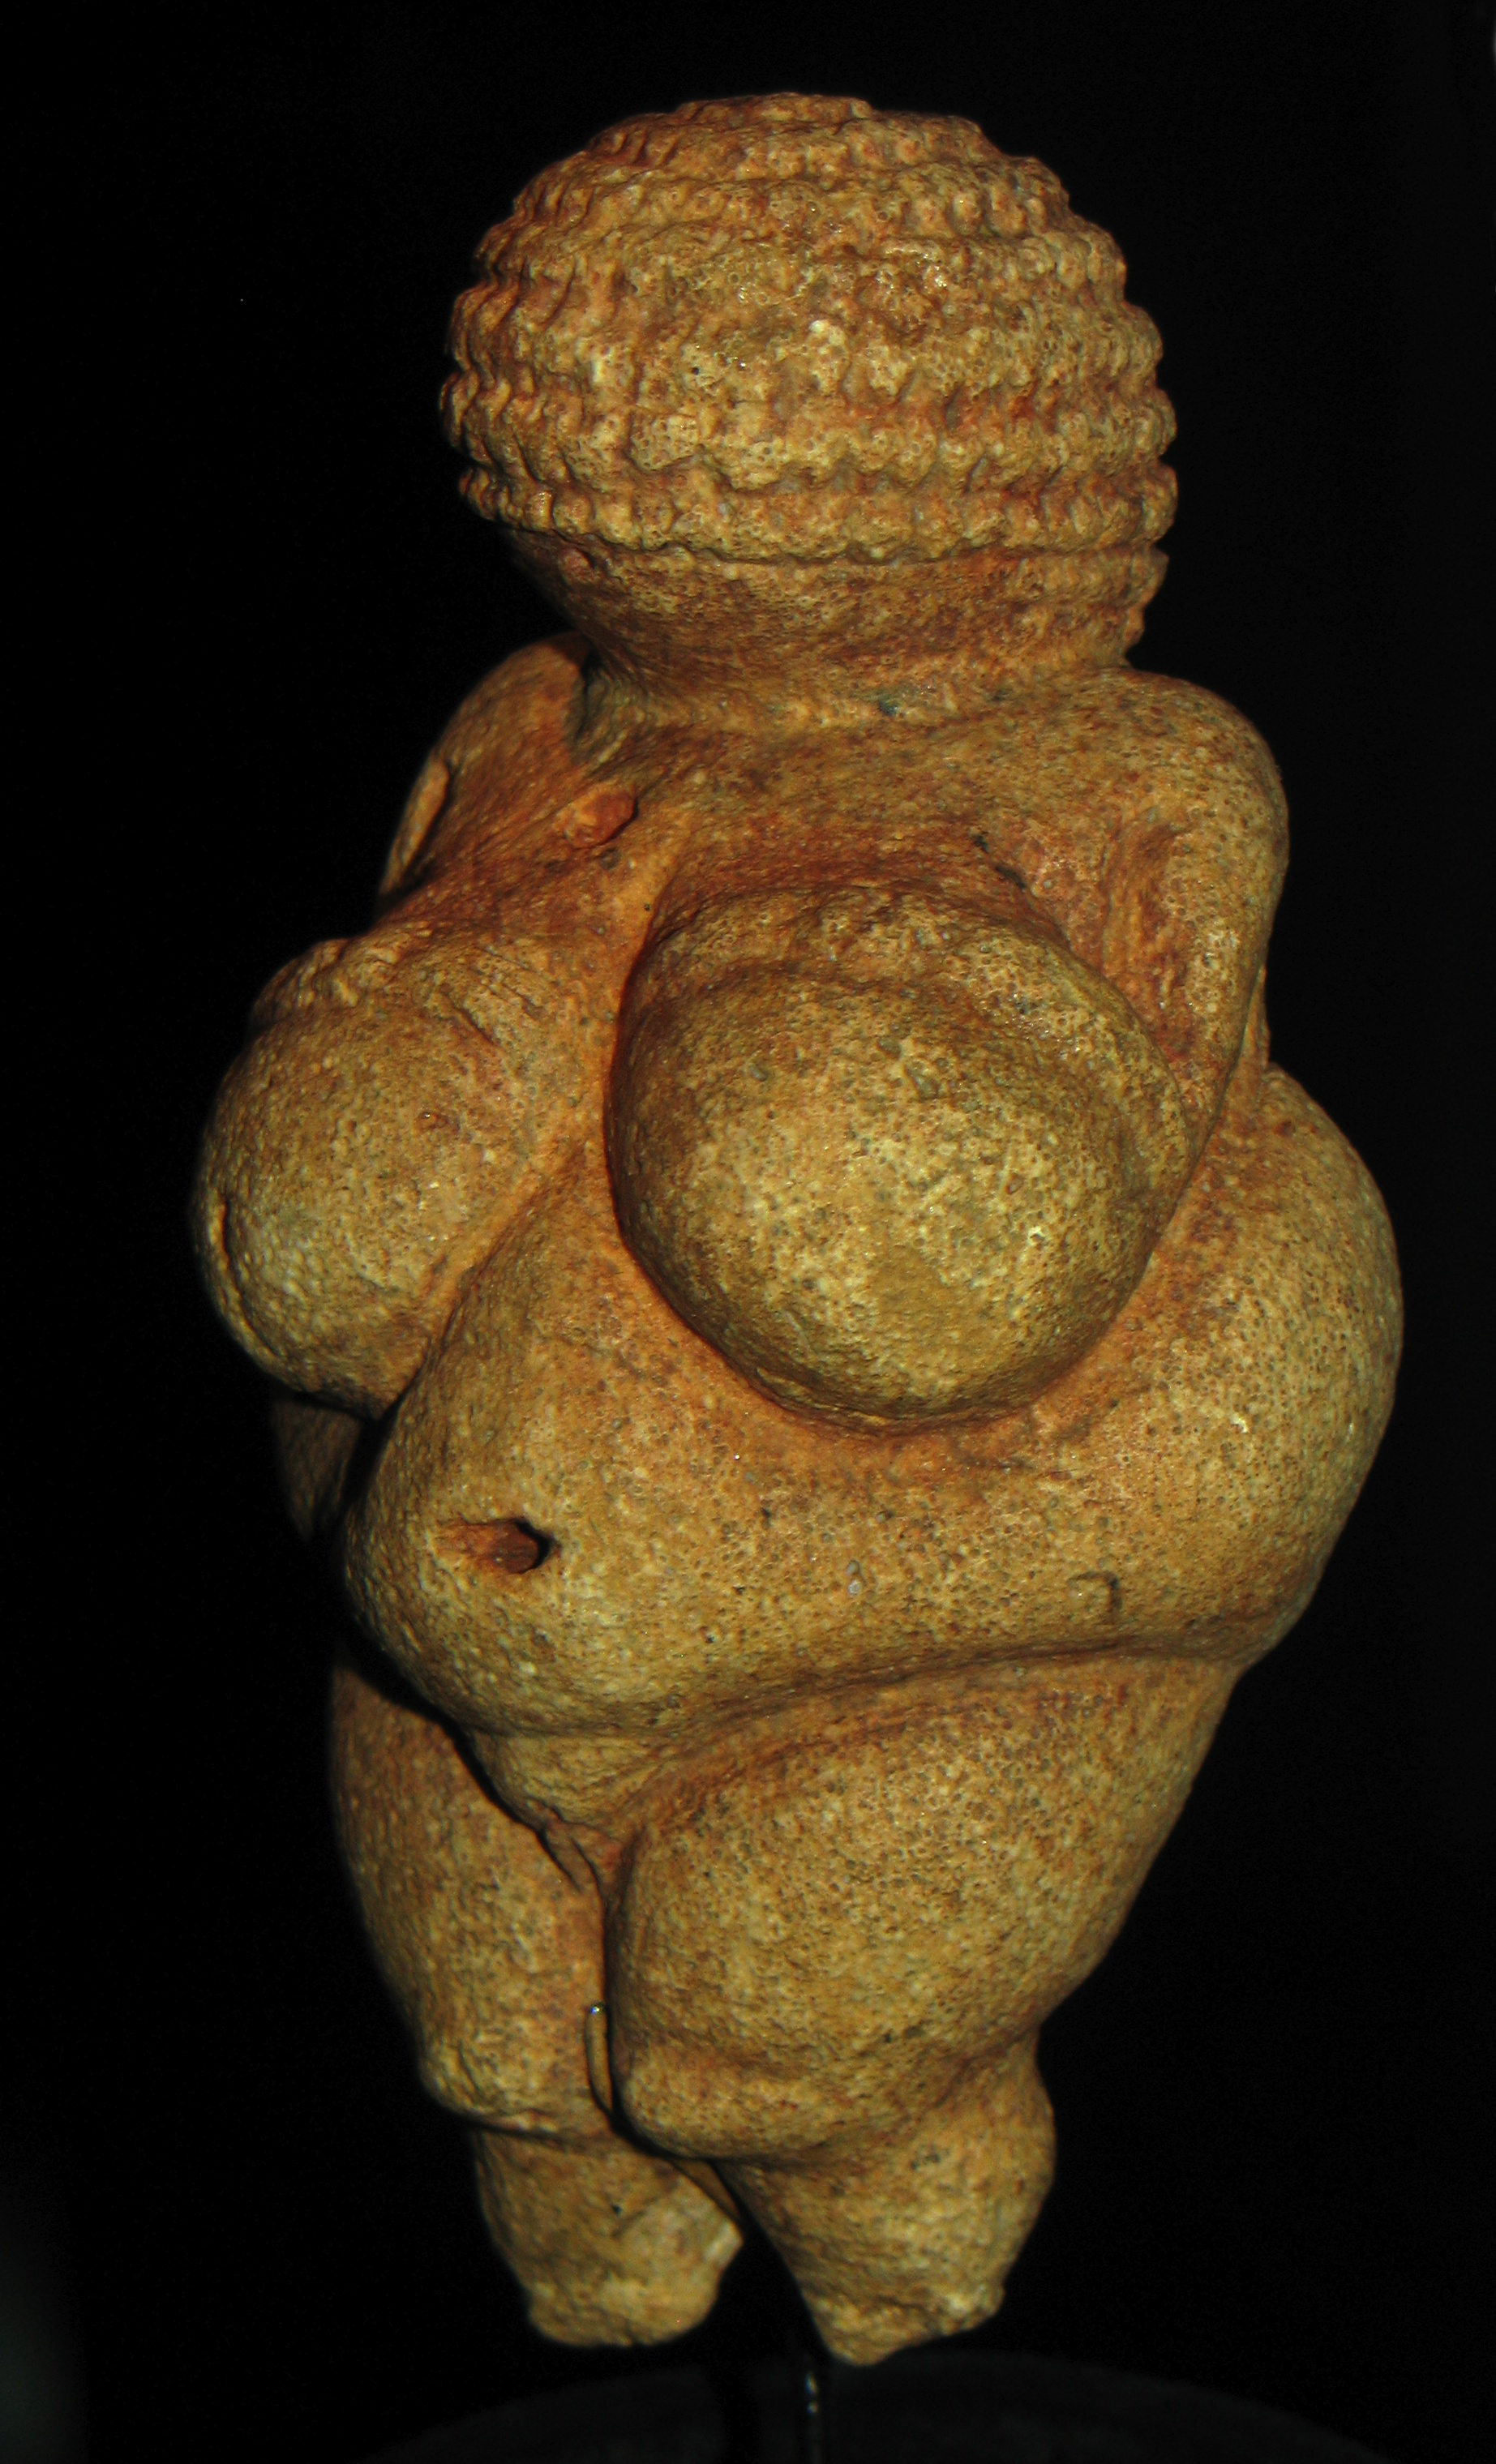 venus of willendorf essay